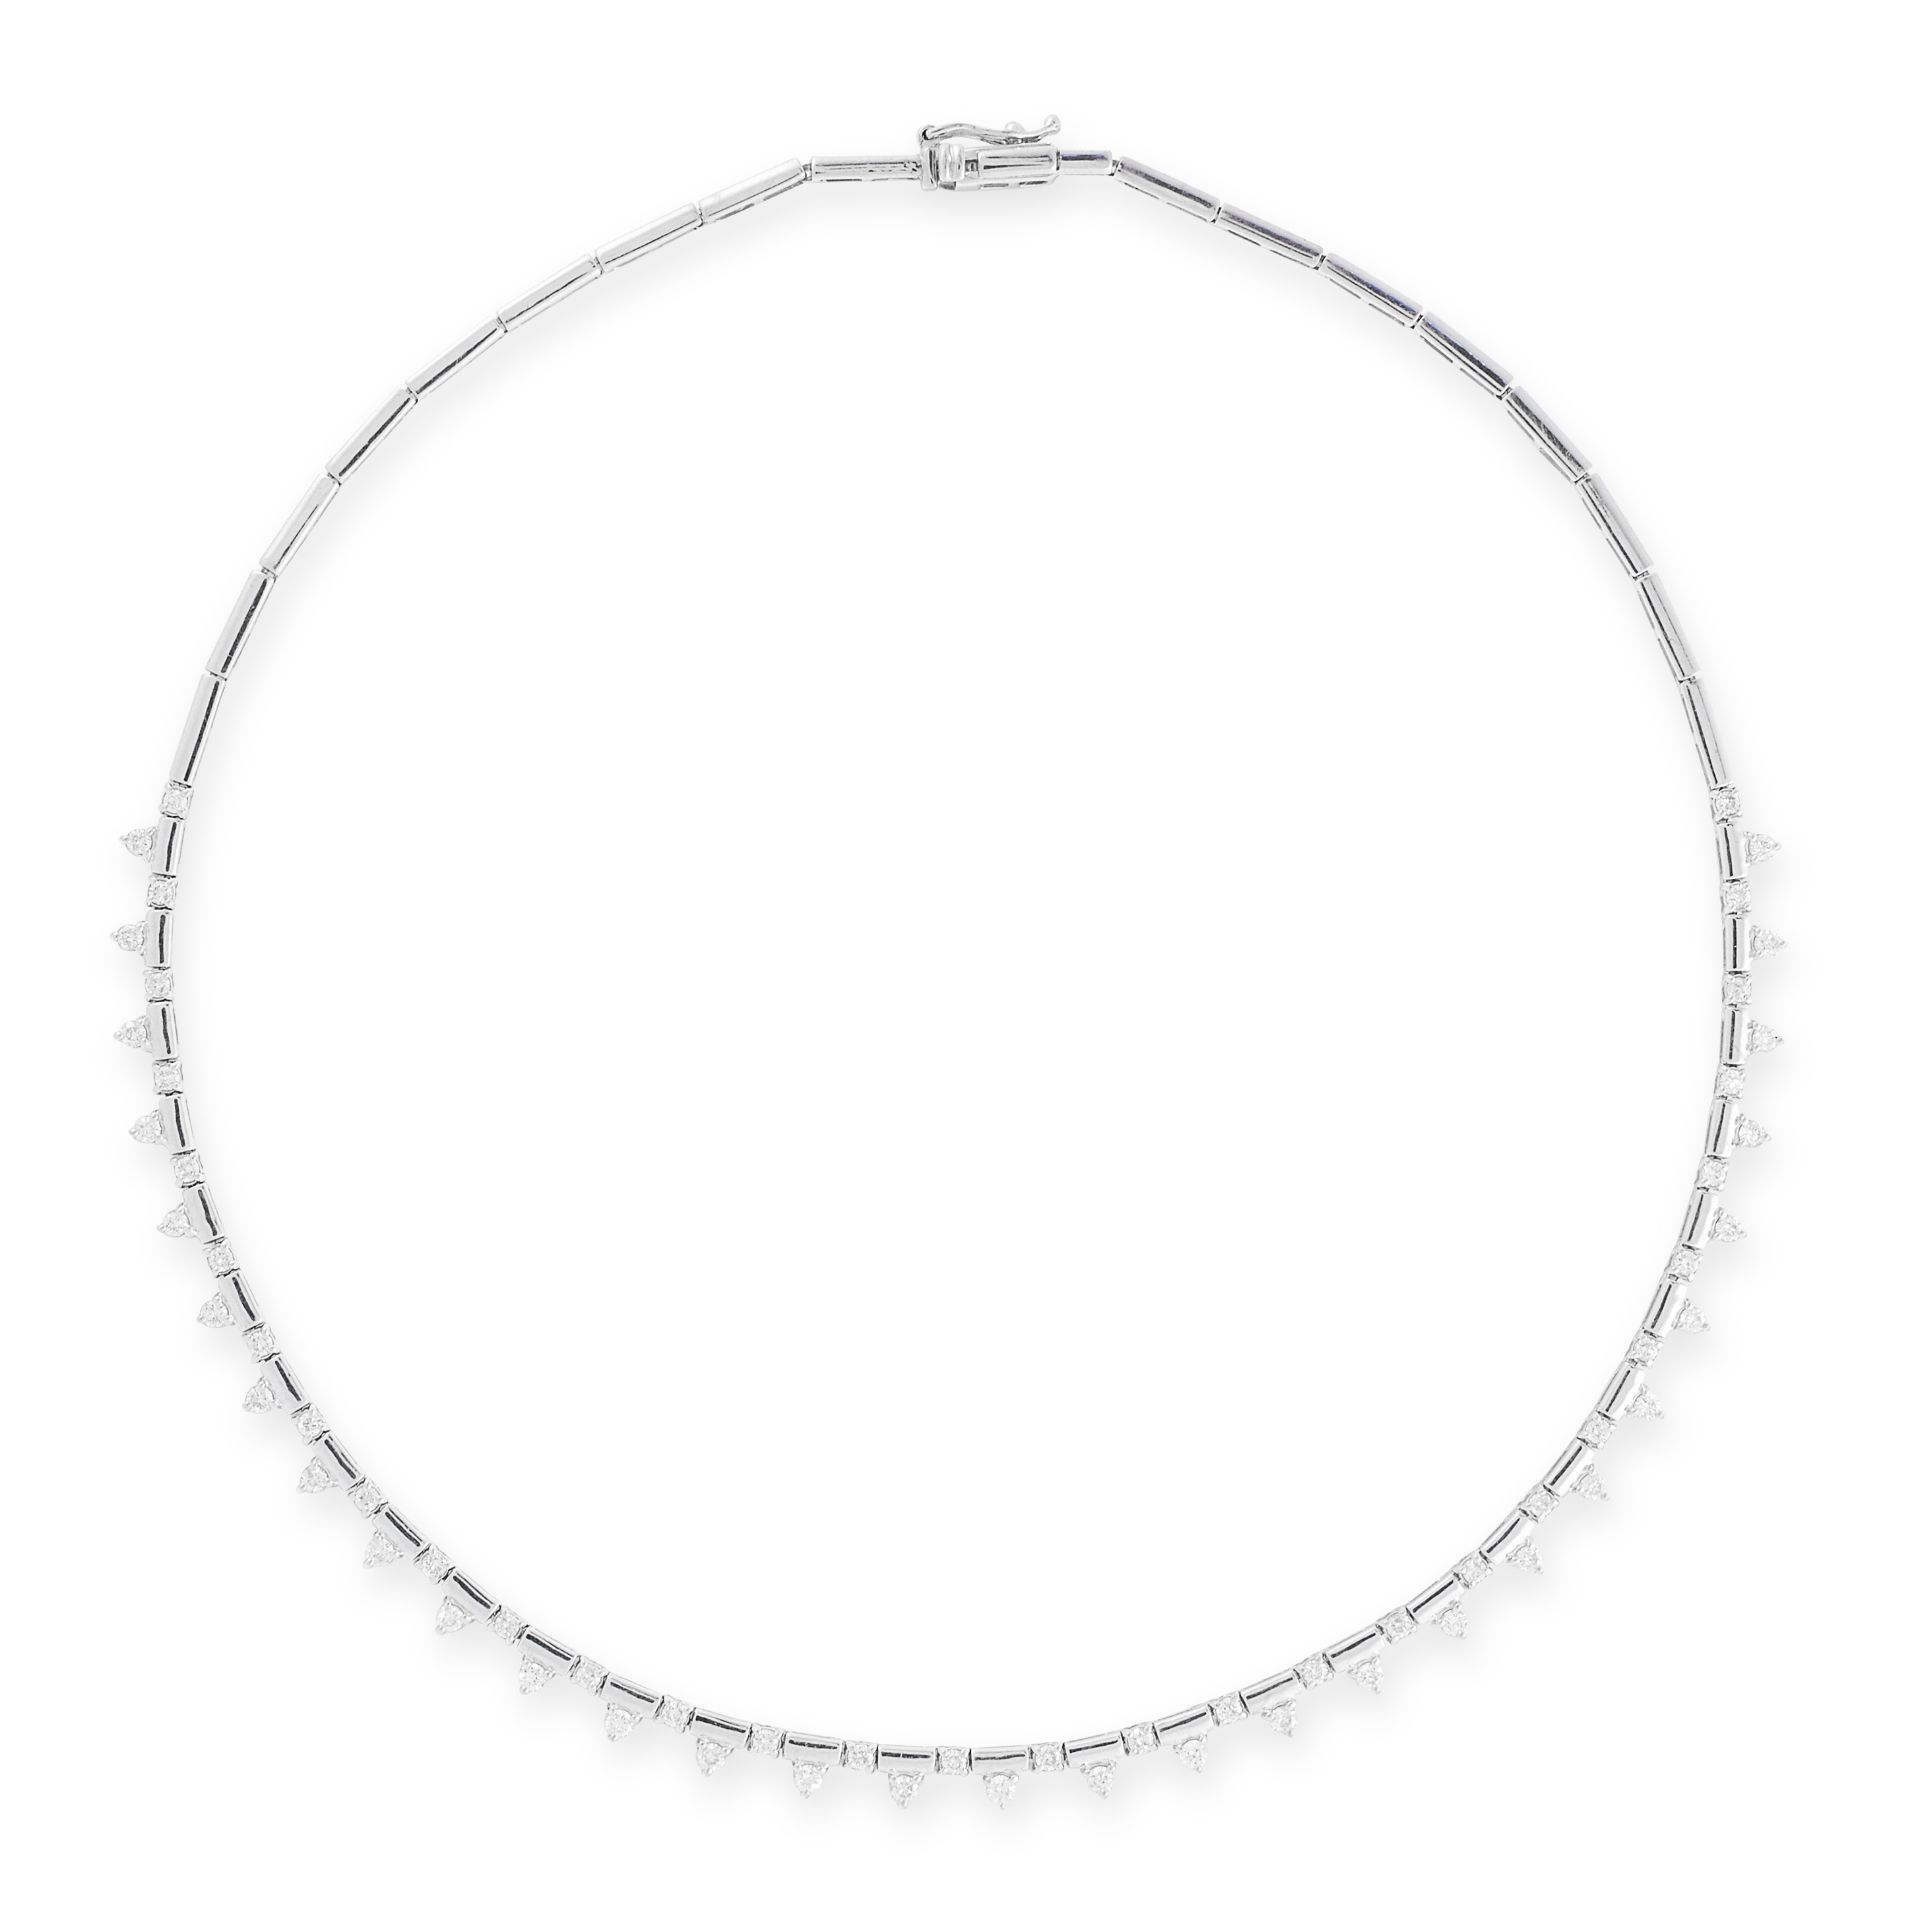 A DIAMOND NECKLACE in 18ct white gold, set with round cut diamonds punctuated by rectangular baton